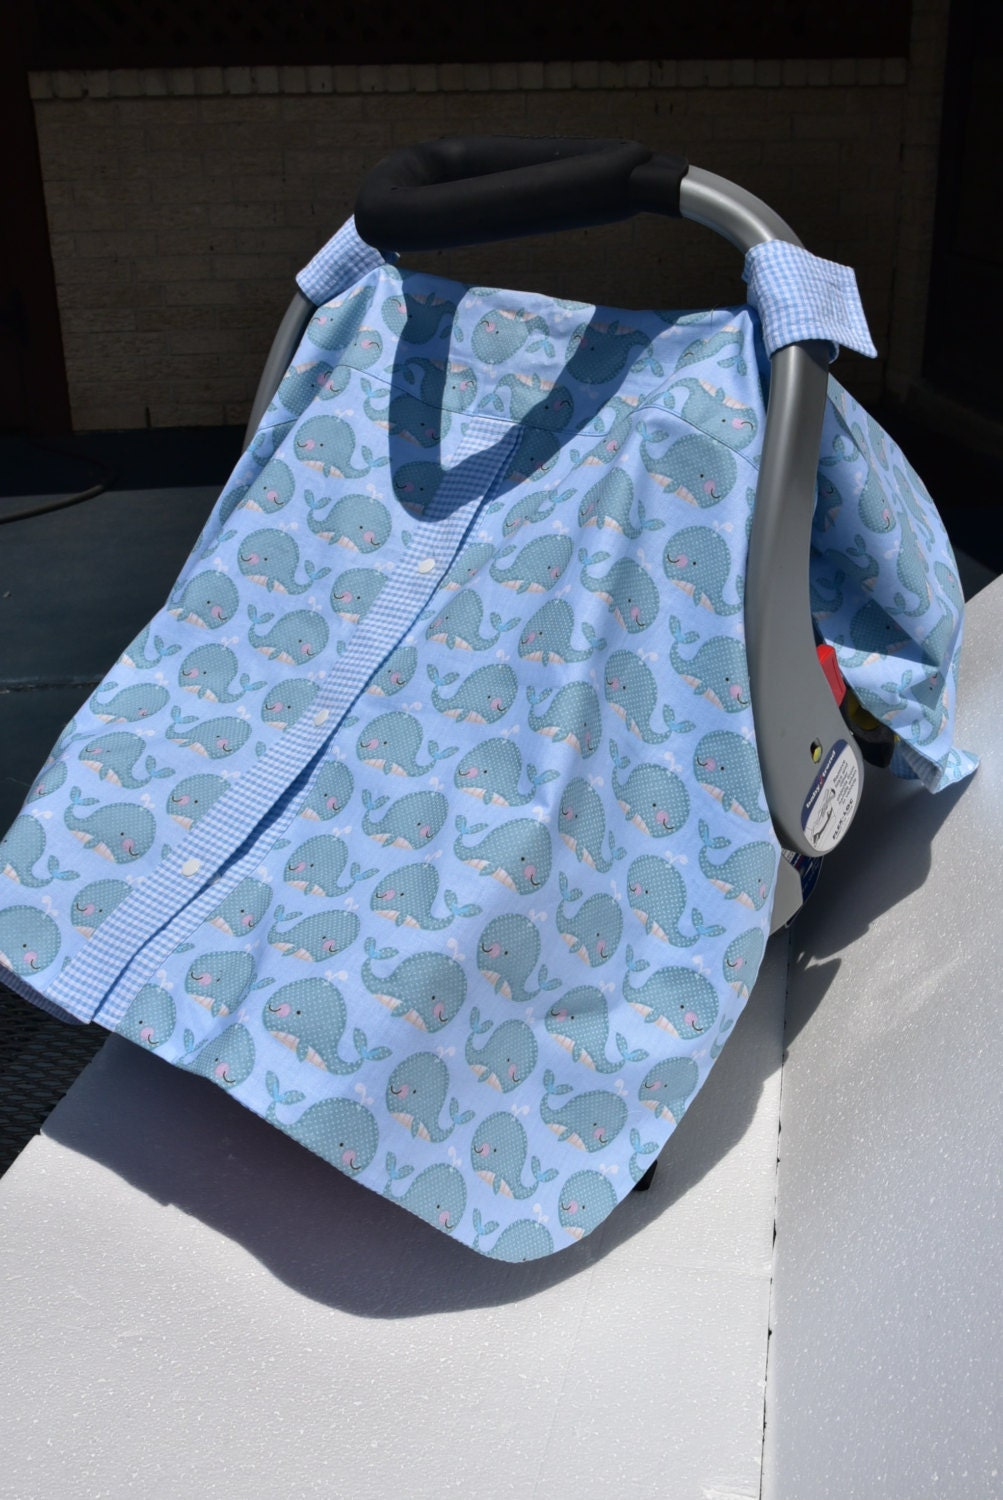 car seat cover for baby boy blue car seat cover snap. Black Bedroom Furniture Sets. Home Design Ideas